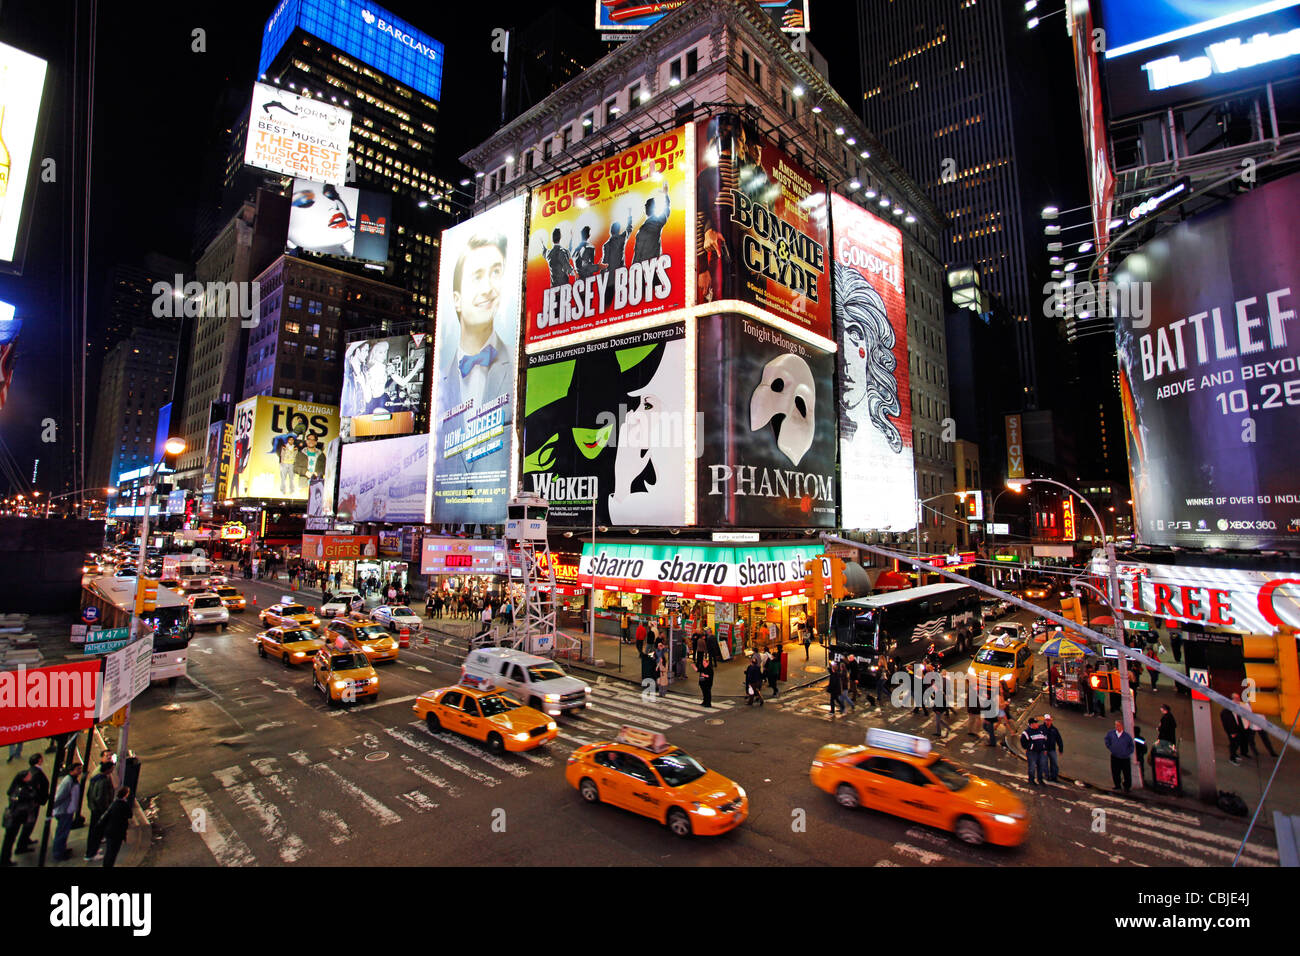 Neon Lights in Times Square, New York - Stock Image